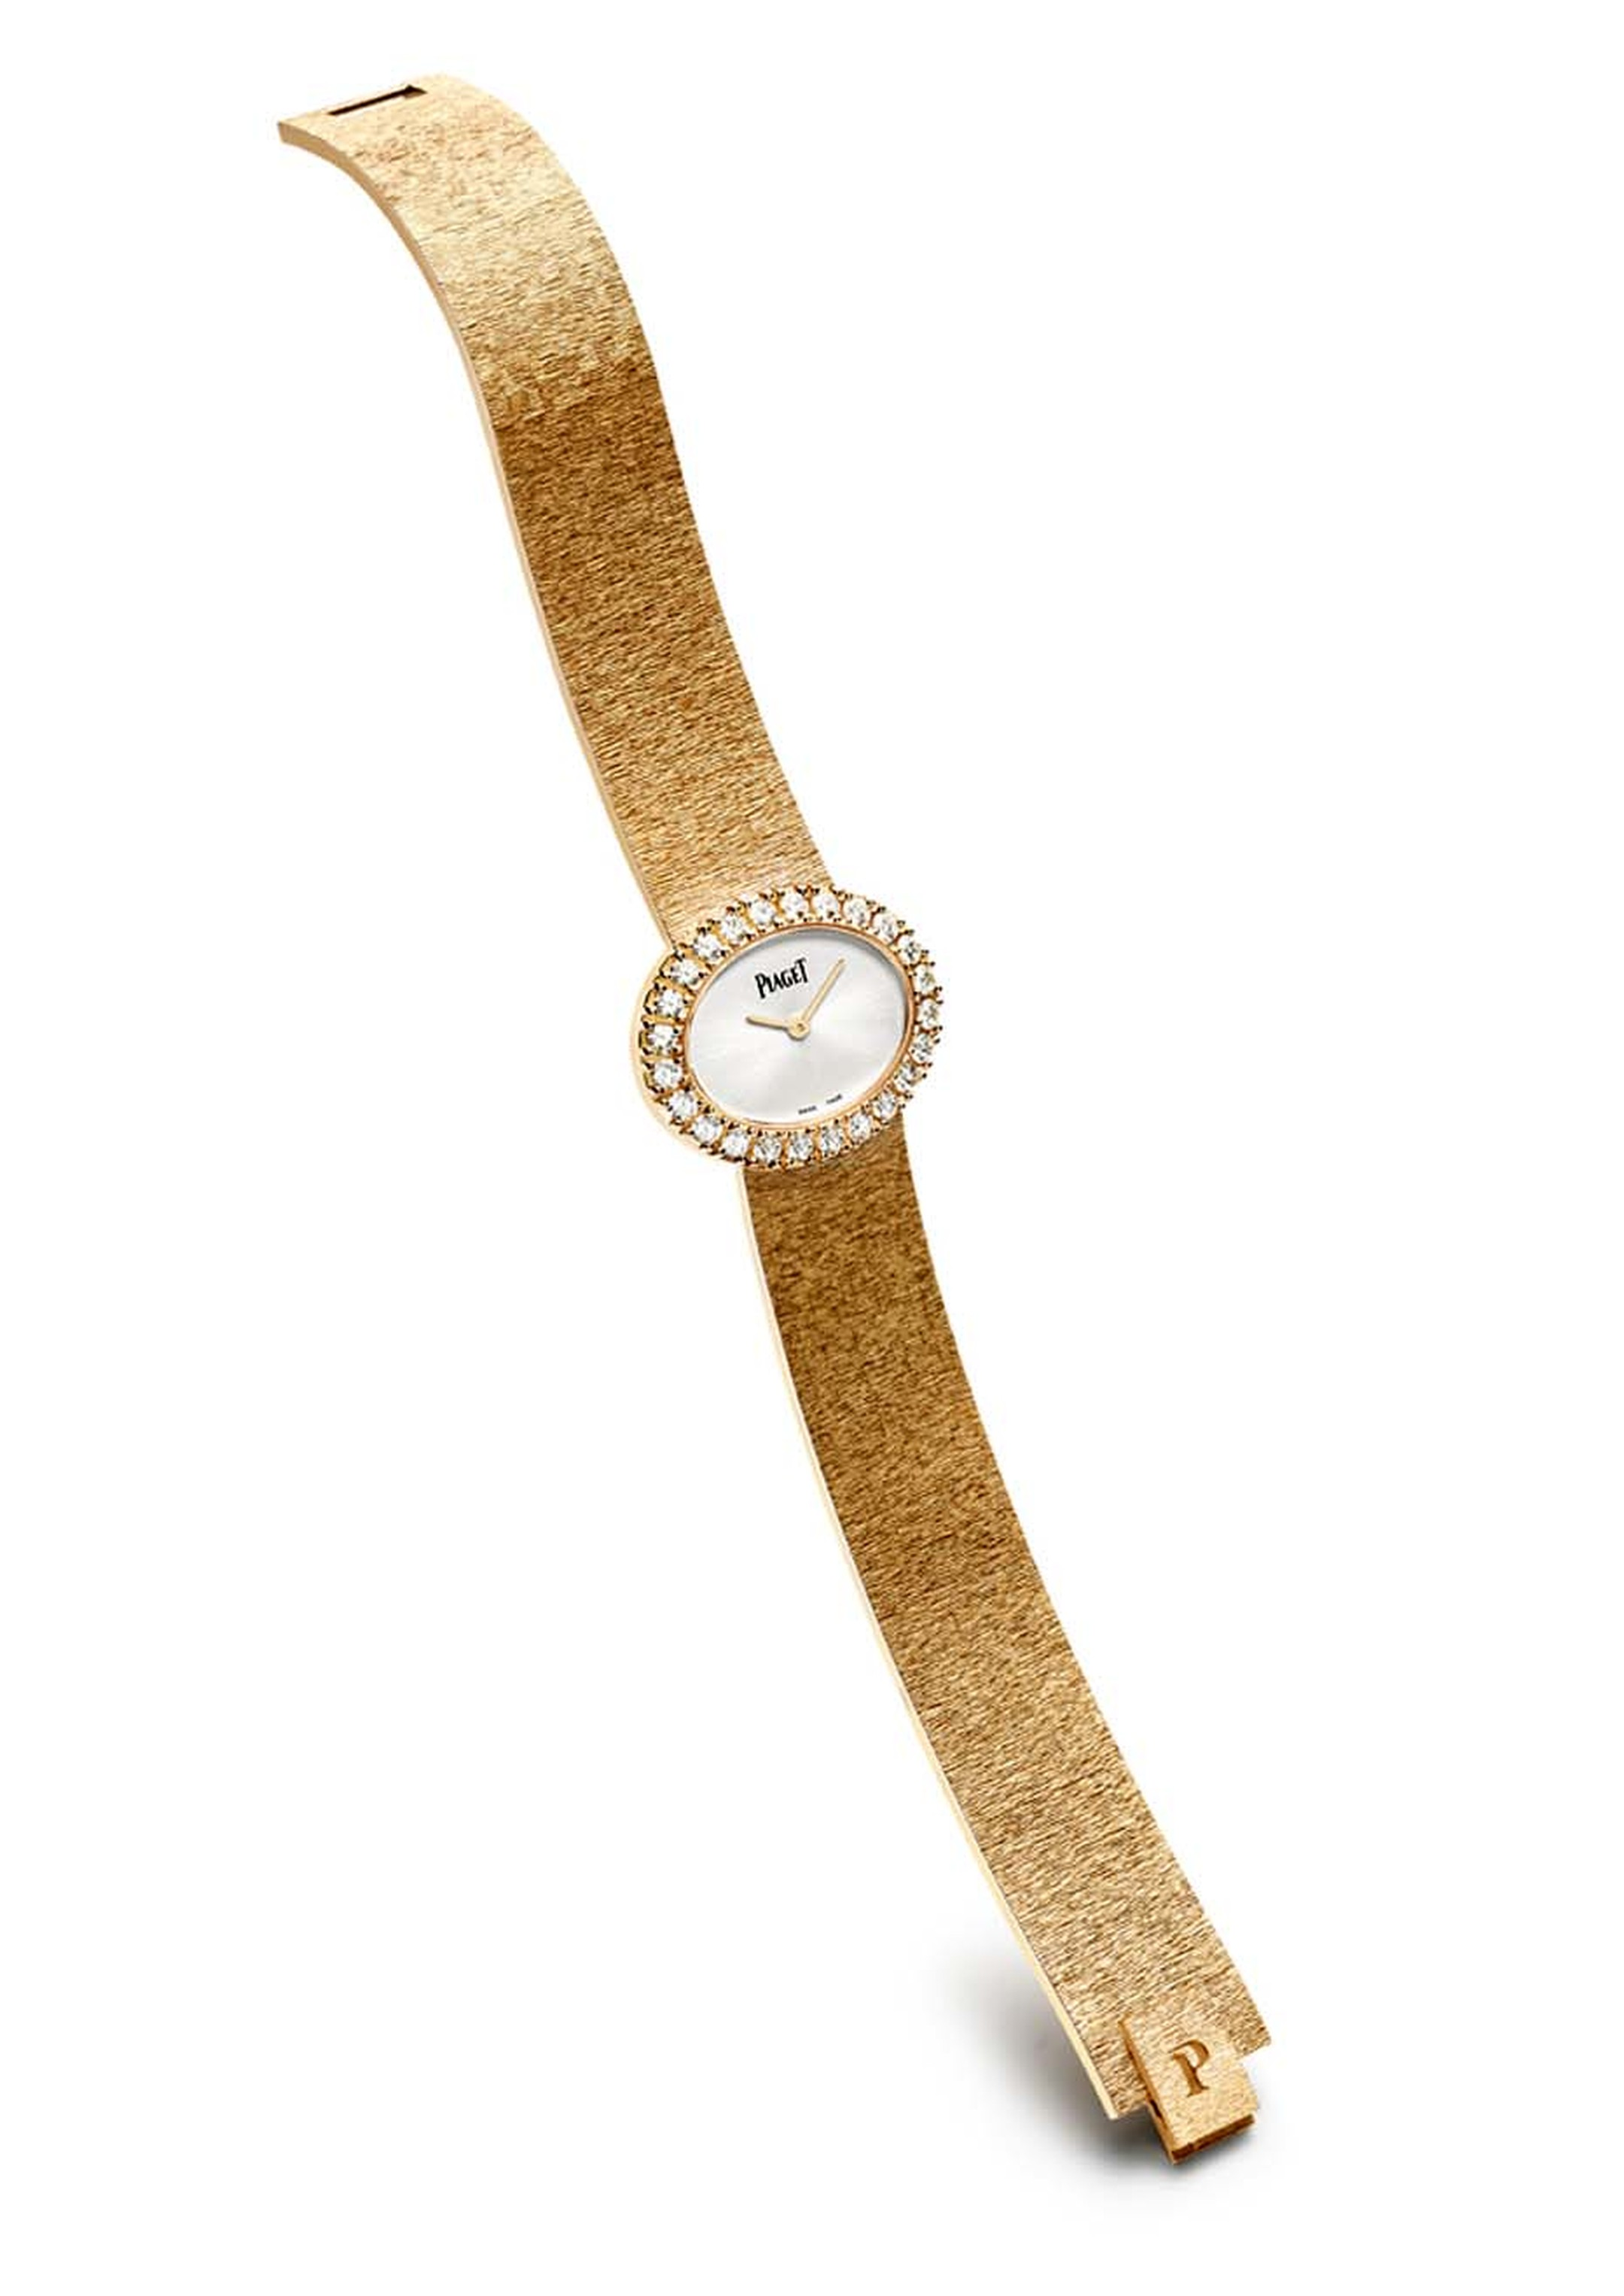 The 1960's and 70's were the heyday of Piaget's creativity as a watchmaker and high jewellery maison.